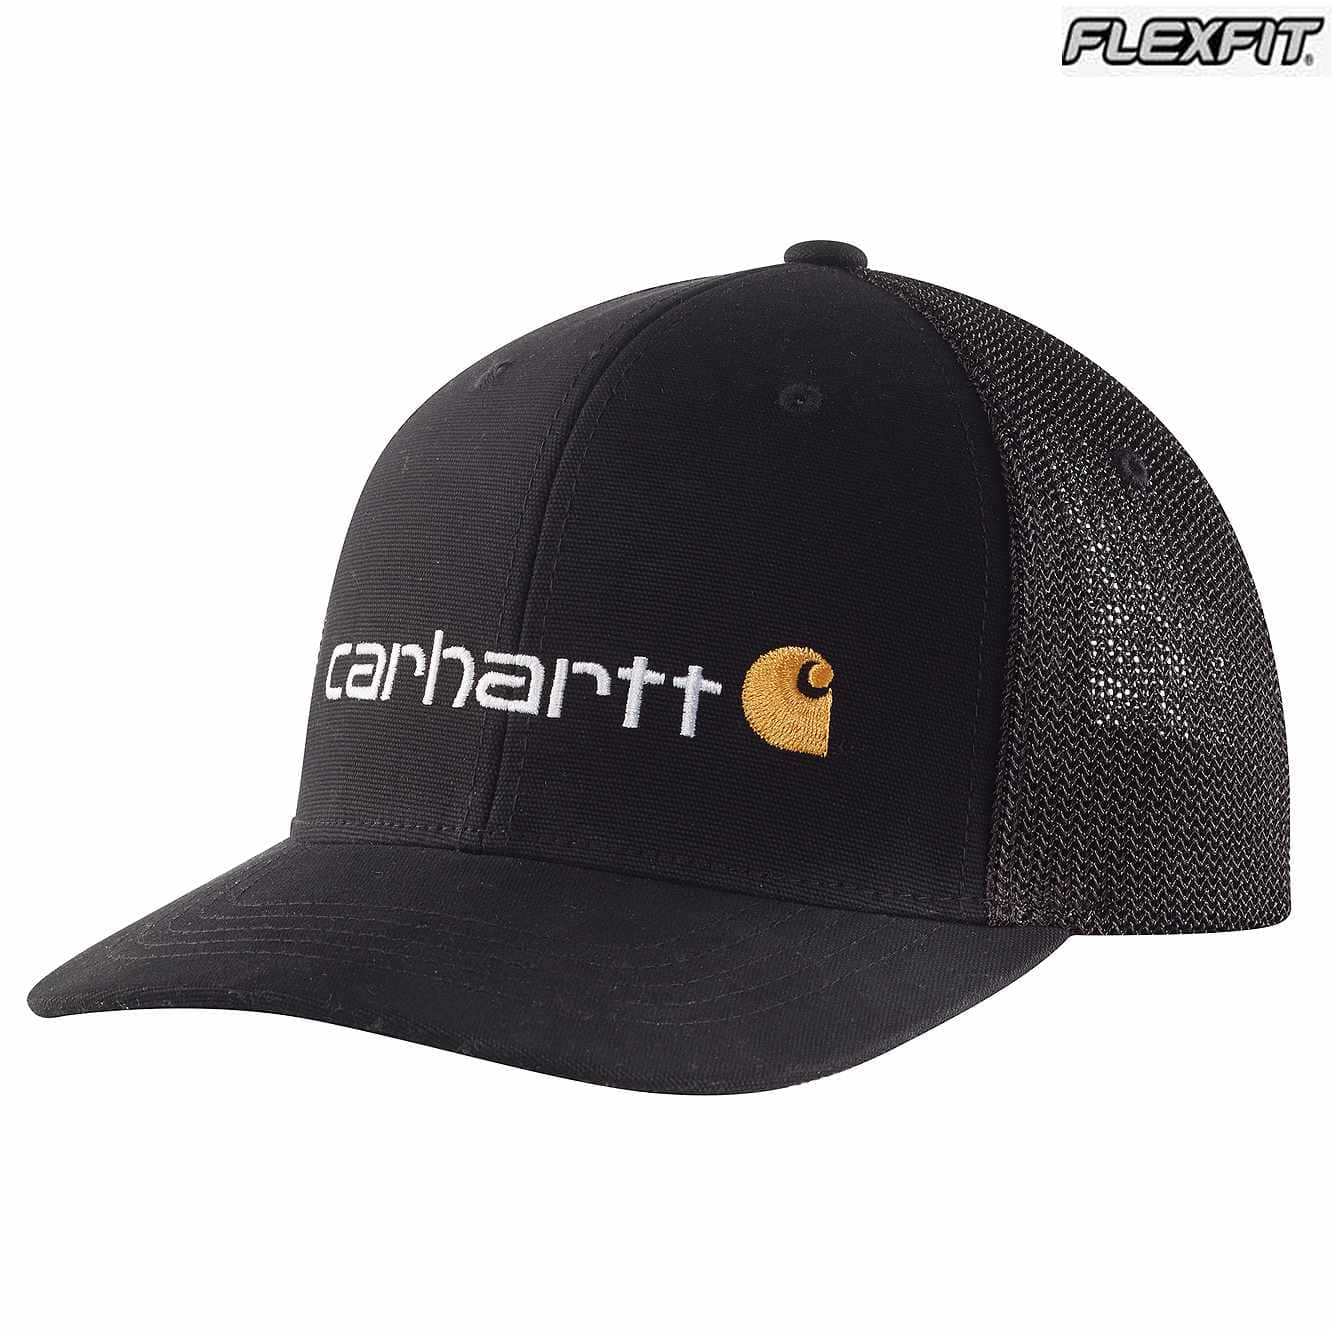 Picture of Rugged Flex® Canvas Mesh-Back Fitted Logo Graphic Cap in Black